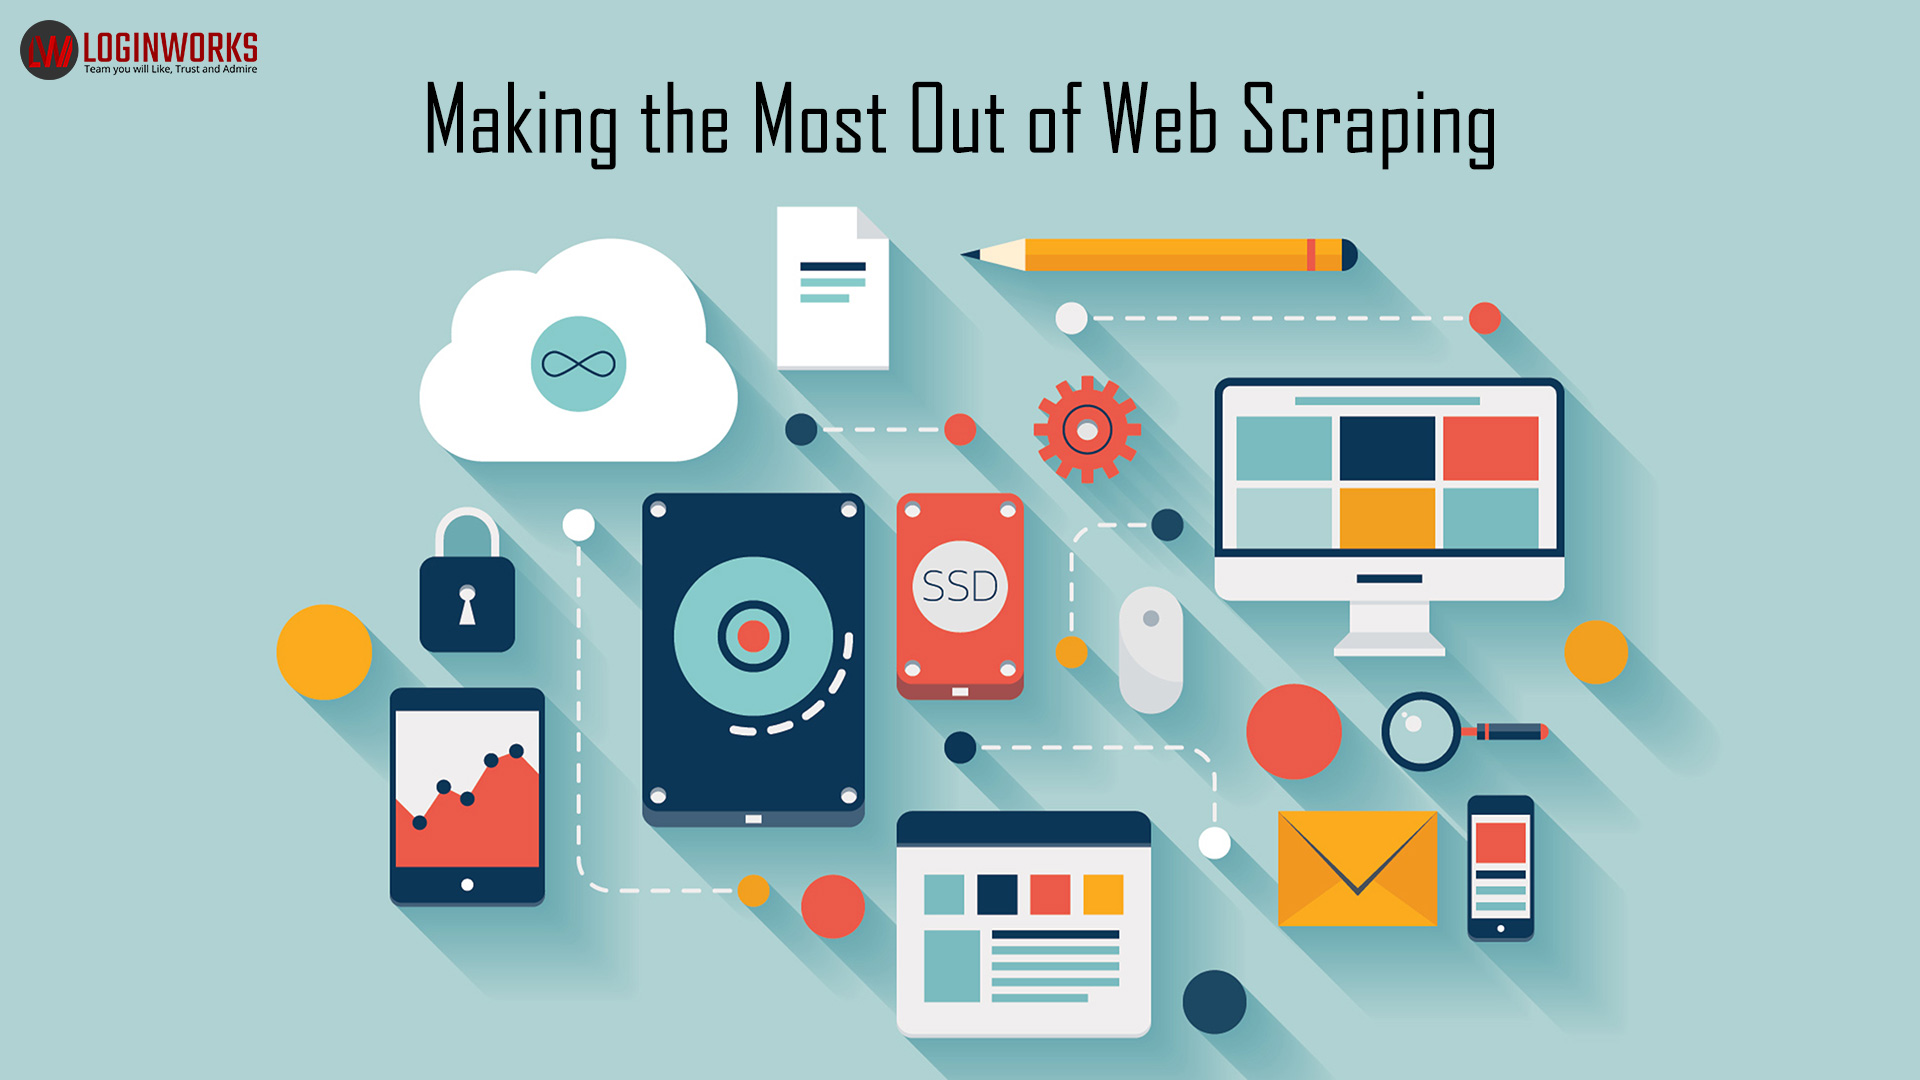 Making the Most Out of Web Scraping